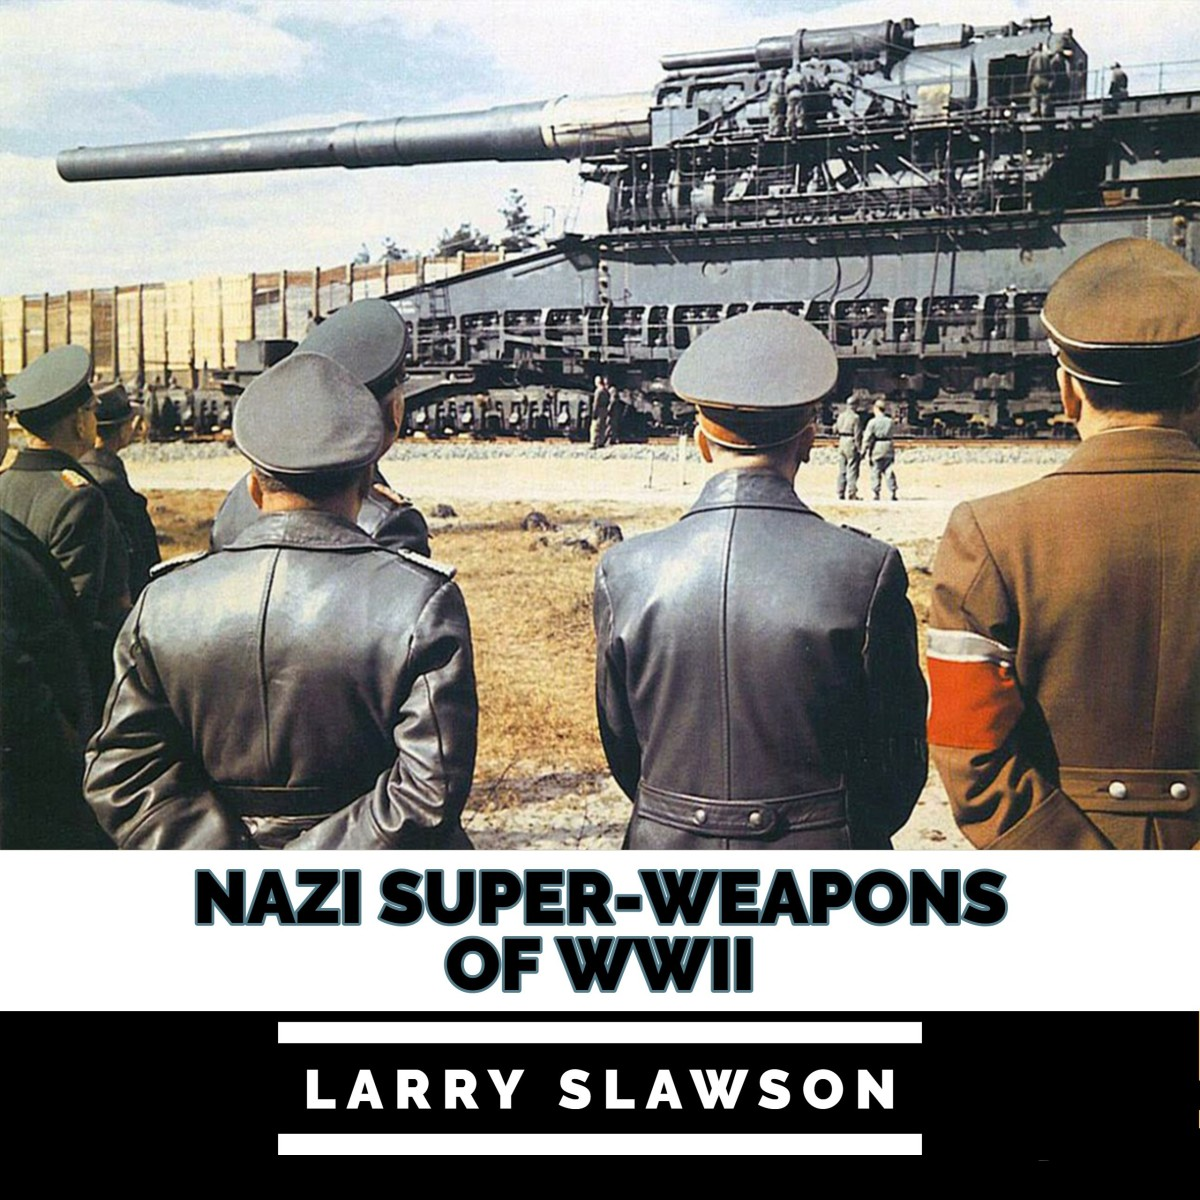 Nazi Super-Weapons of WWII.